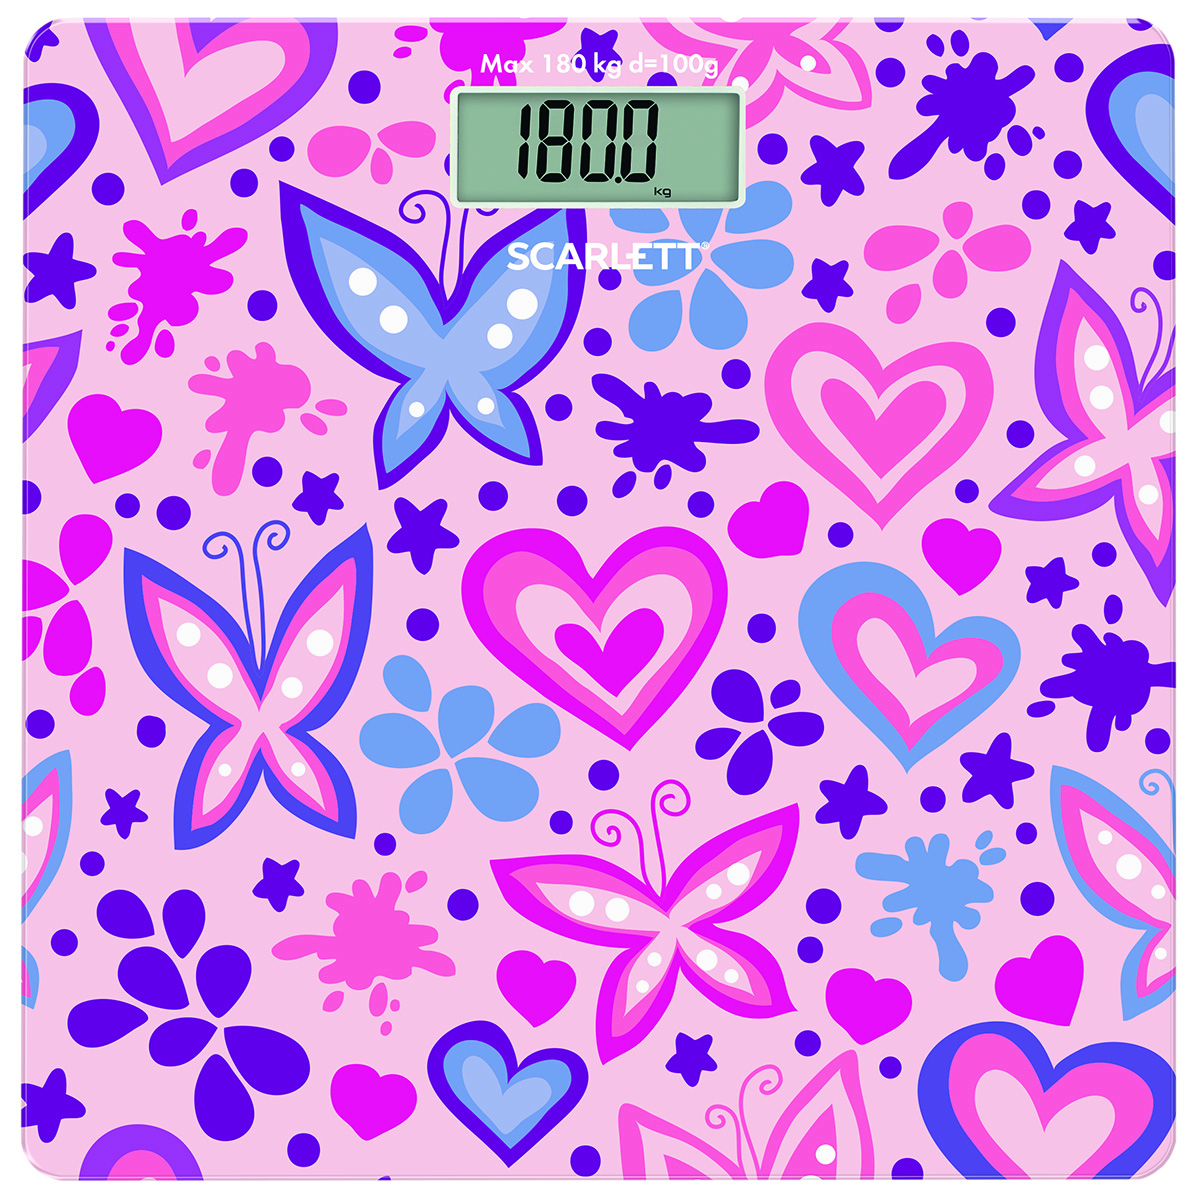 Scarlett SC-BS33E092, Butterfly And Heart весы напольные - Напольные весы